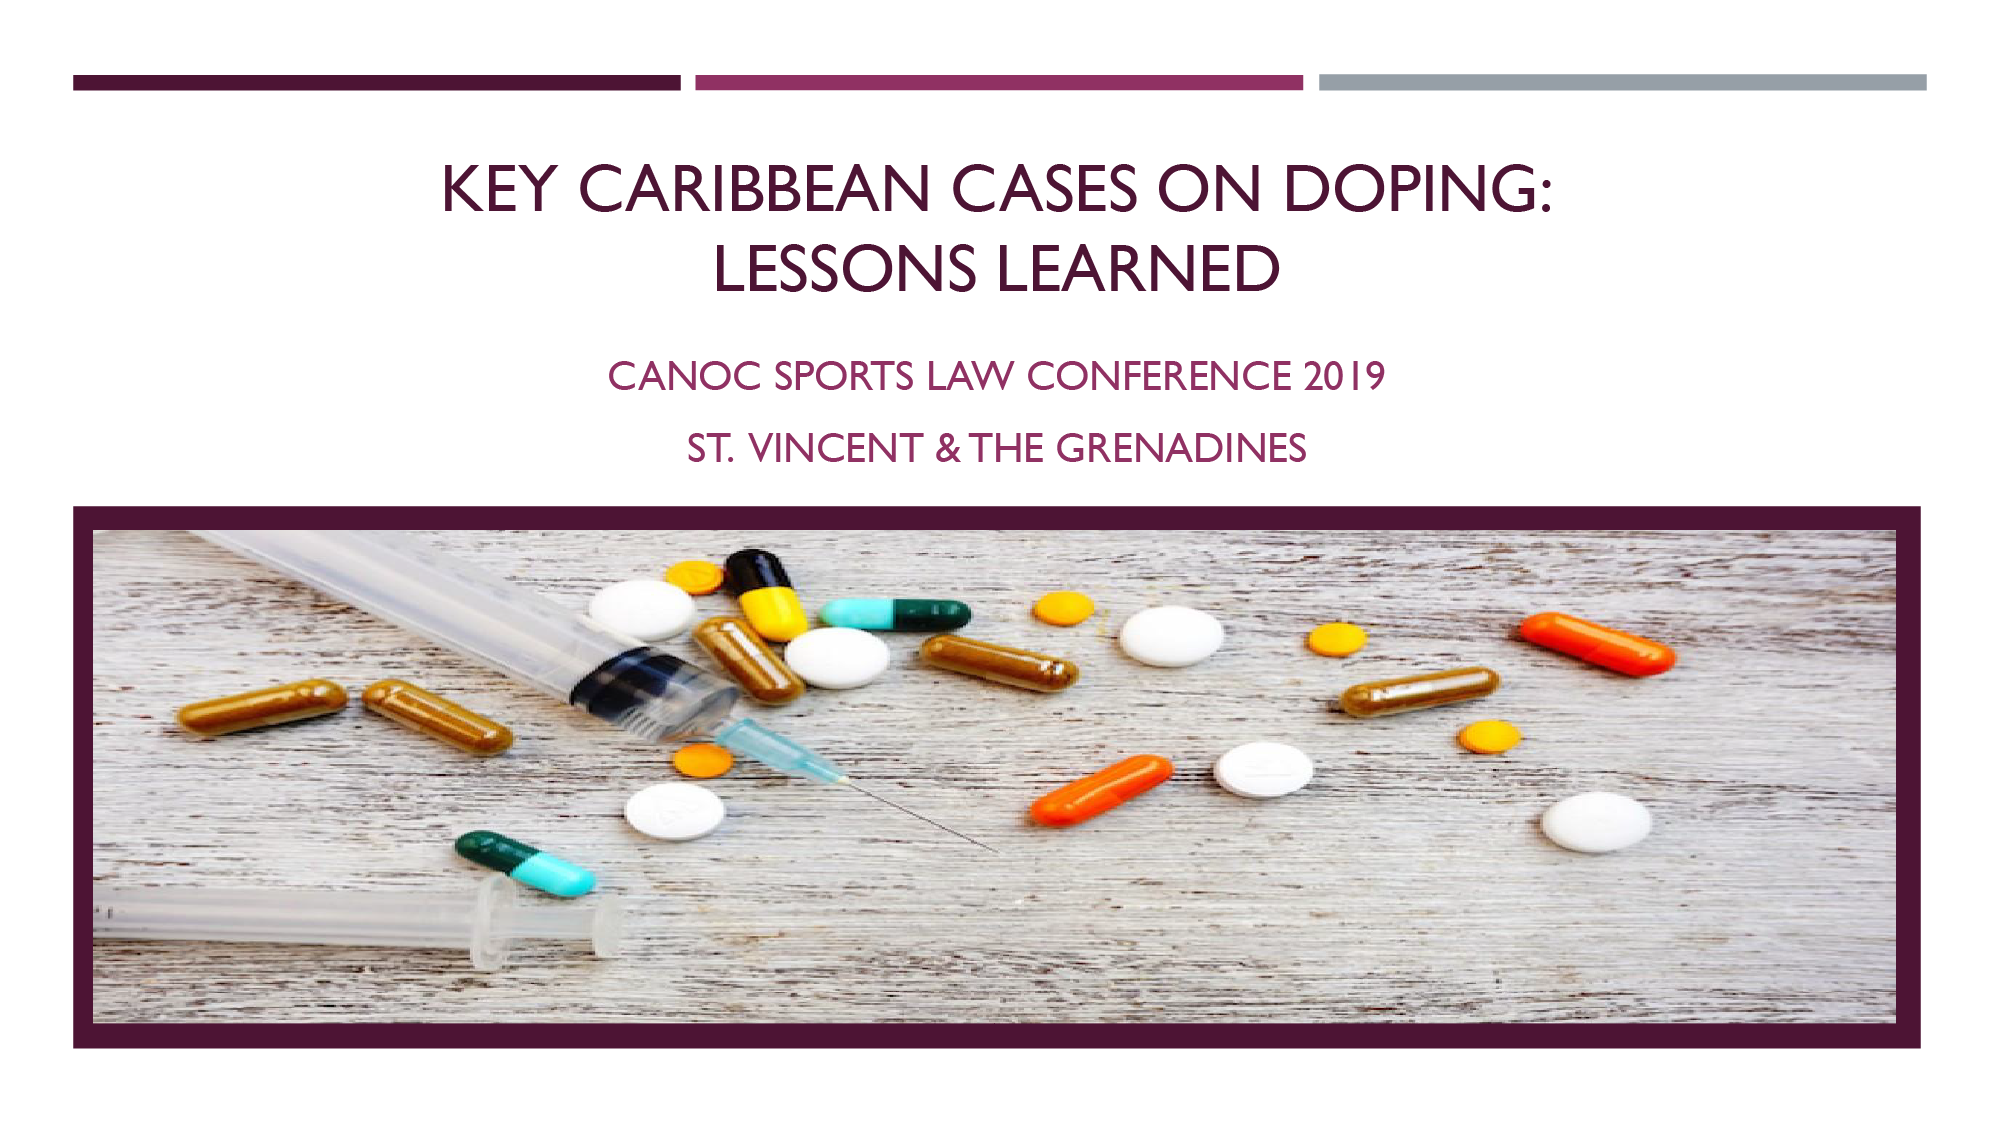 KEY CARIBBEAN CASES ON DOPING